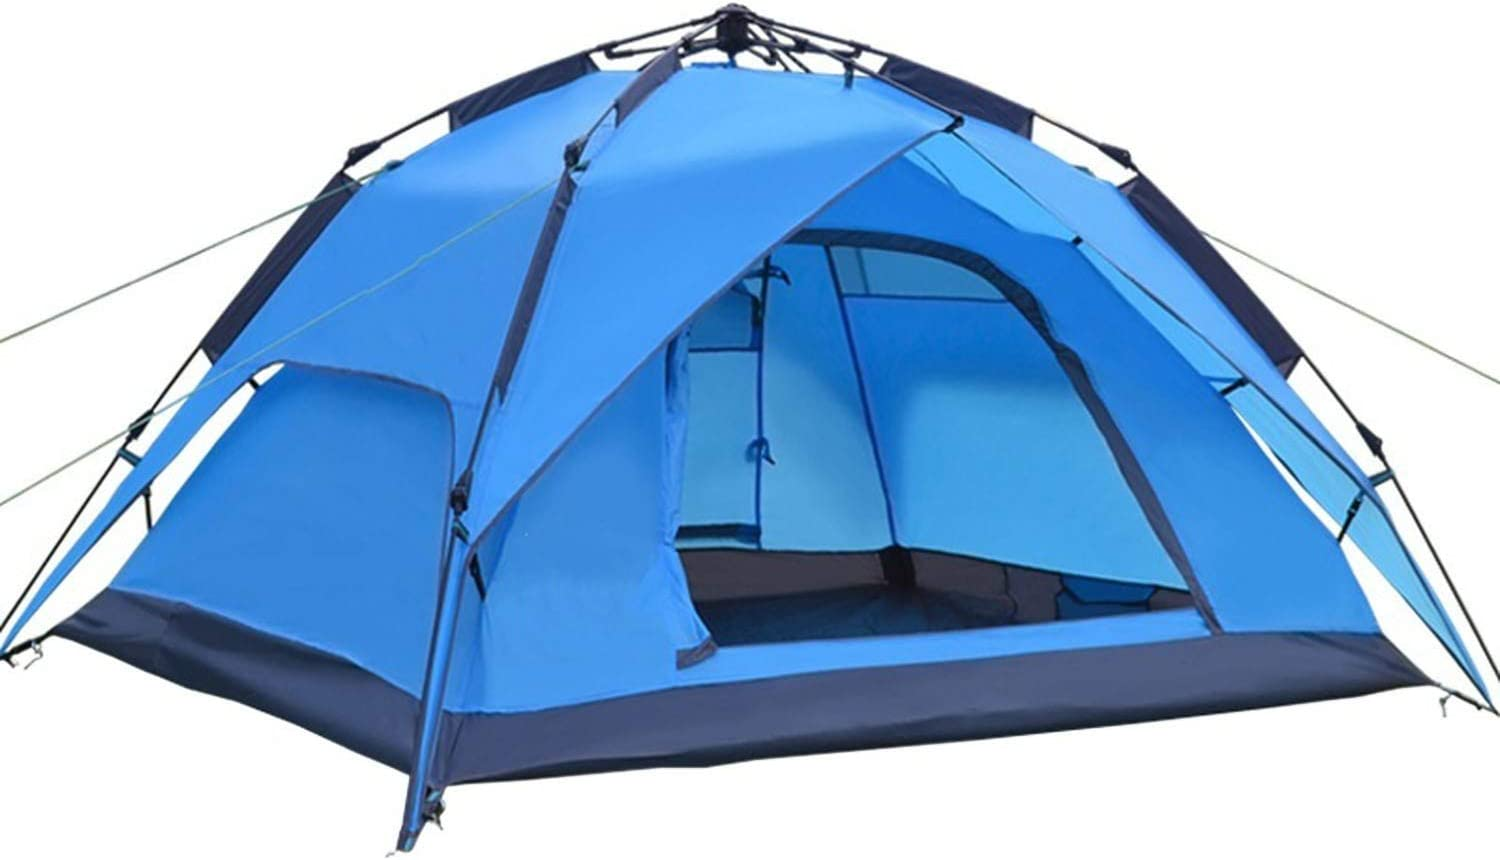 Desert Fox Automatic Camping Tent 3 4 Person Family Tent for